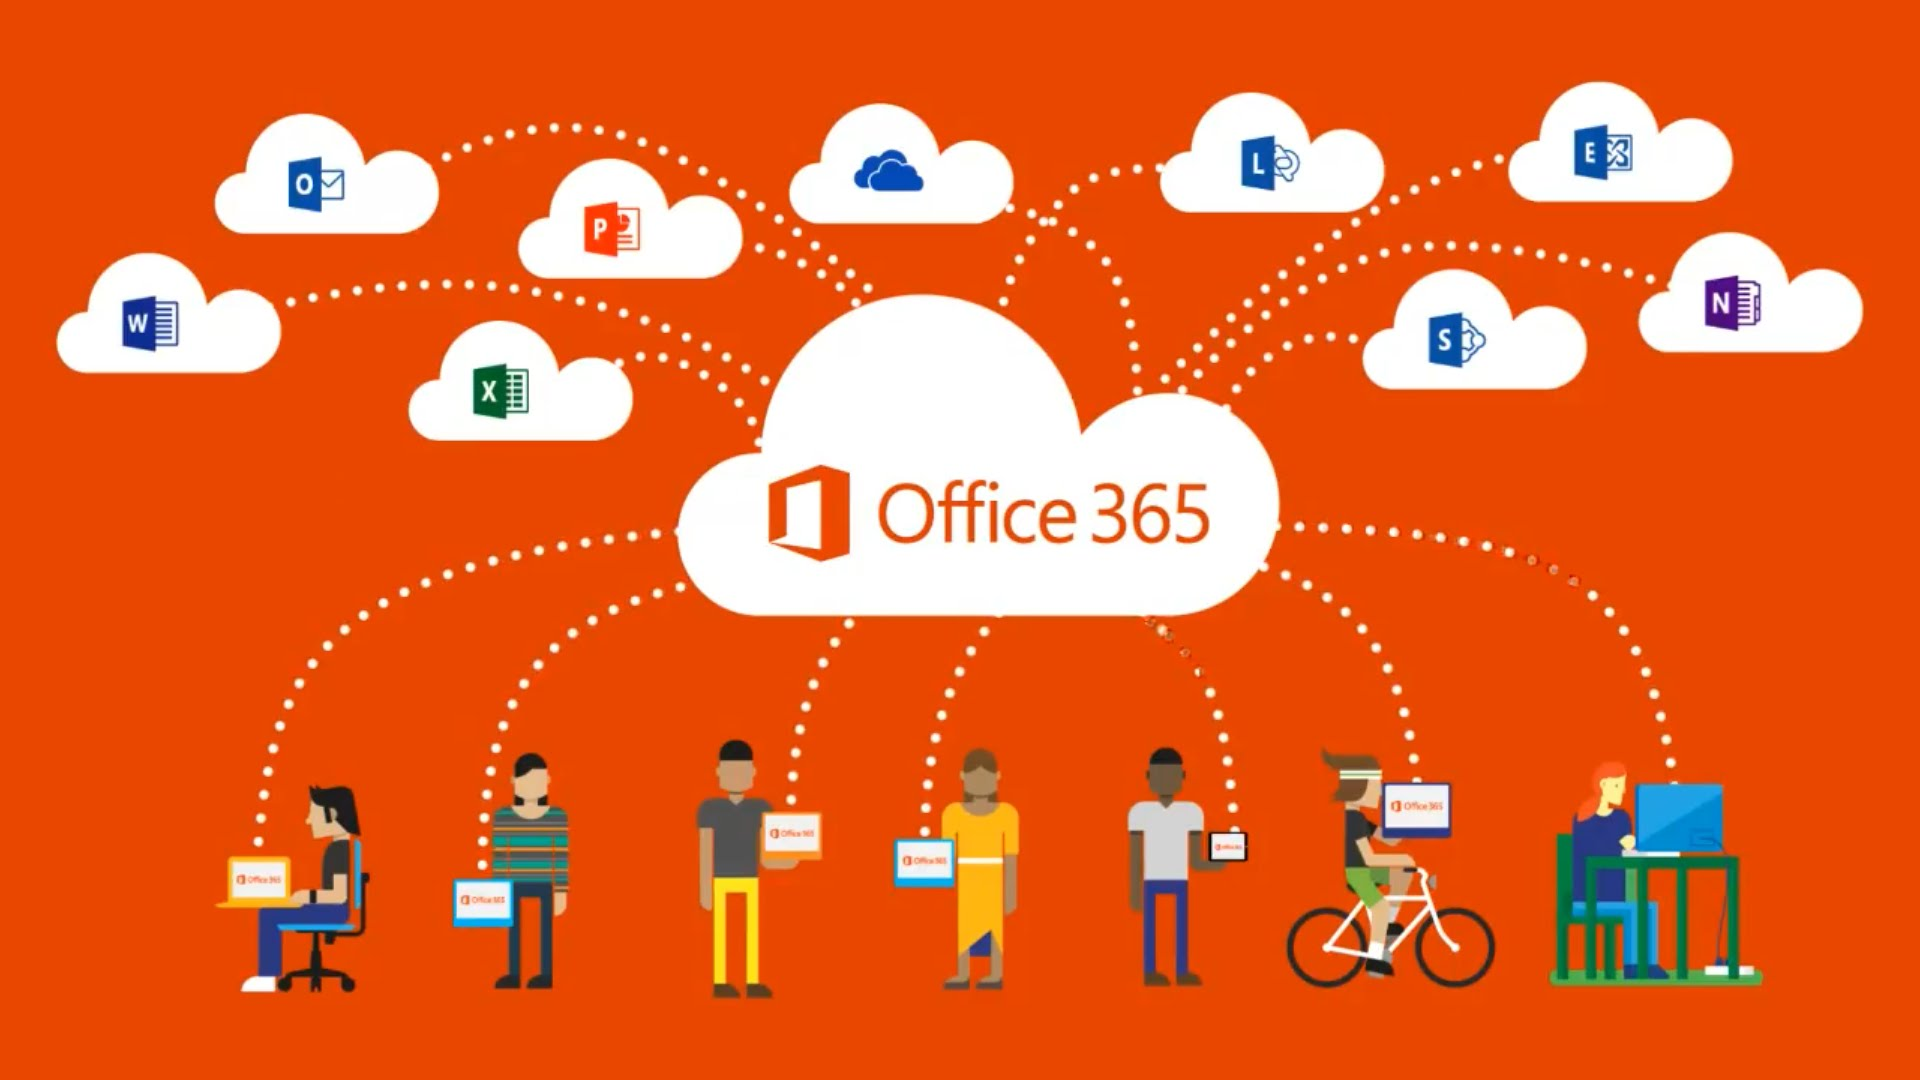 Microsoft Office 365: What's all the fuss about?